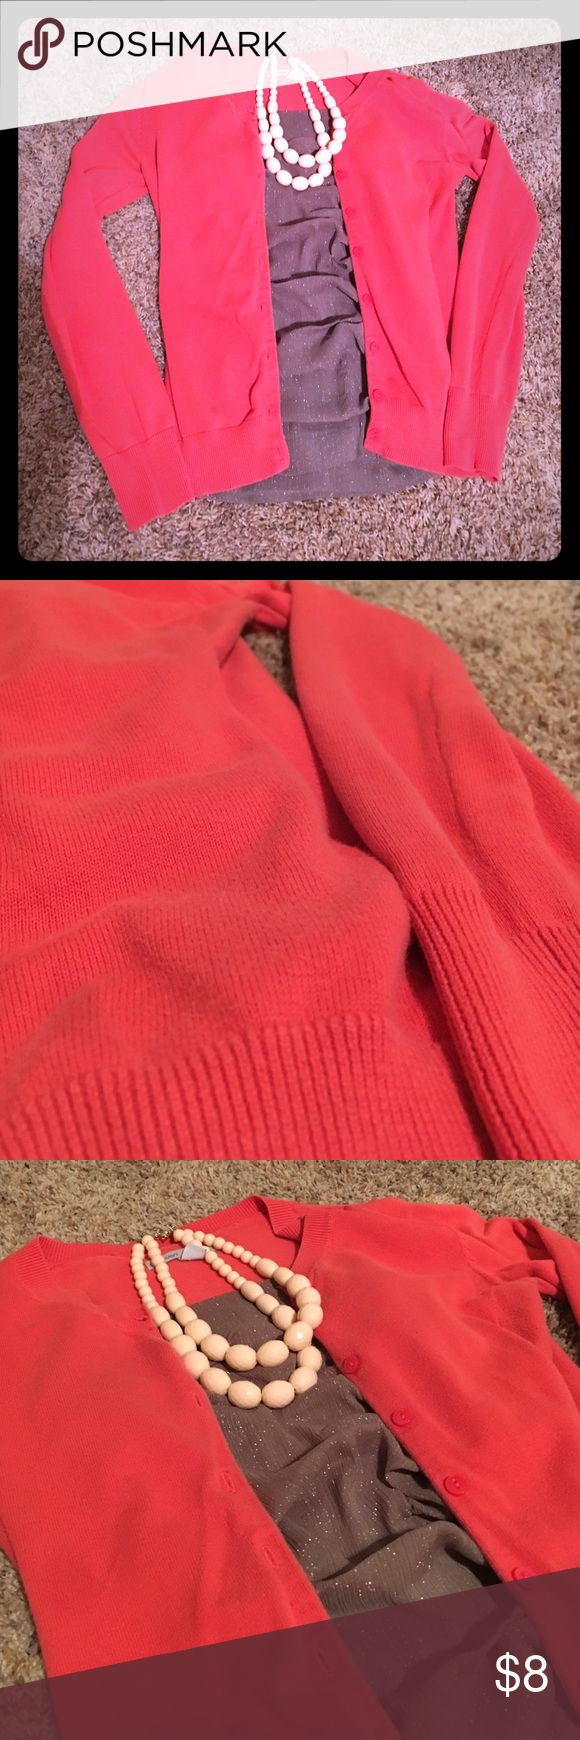 Coral Cardigan Coral Old Navy Cardigan. Good used condition with a lot of life left. Old Navy Sweaters Cardigans